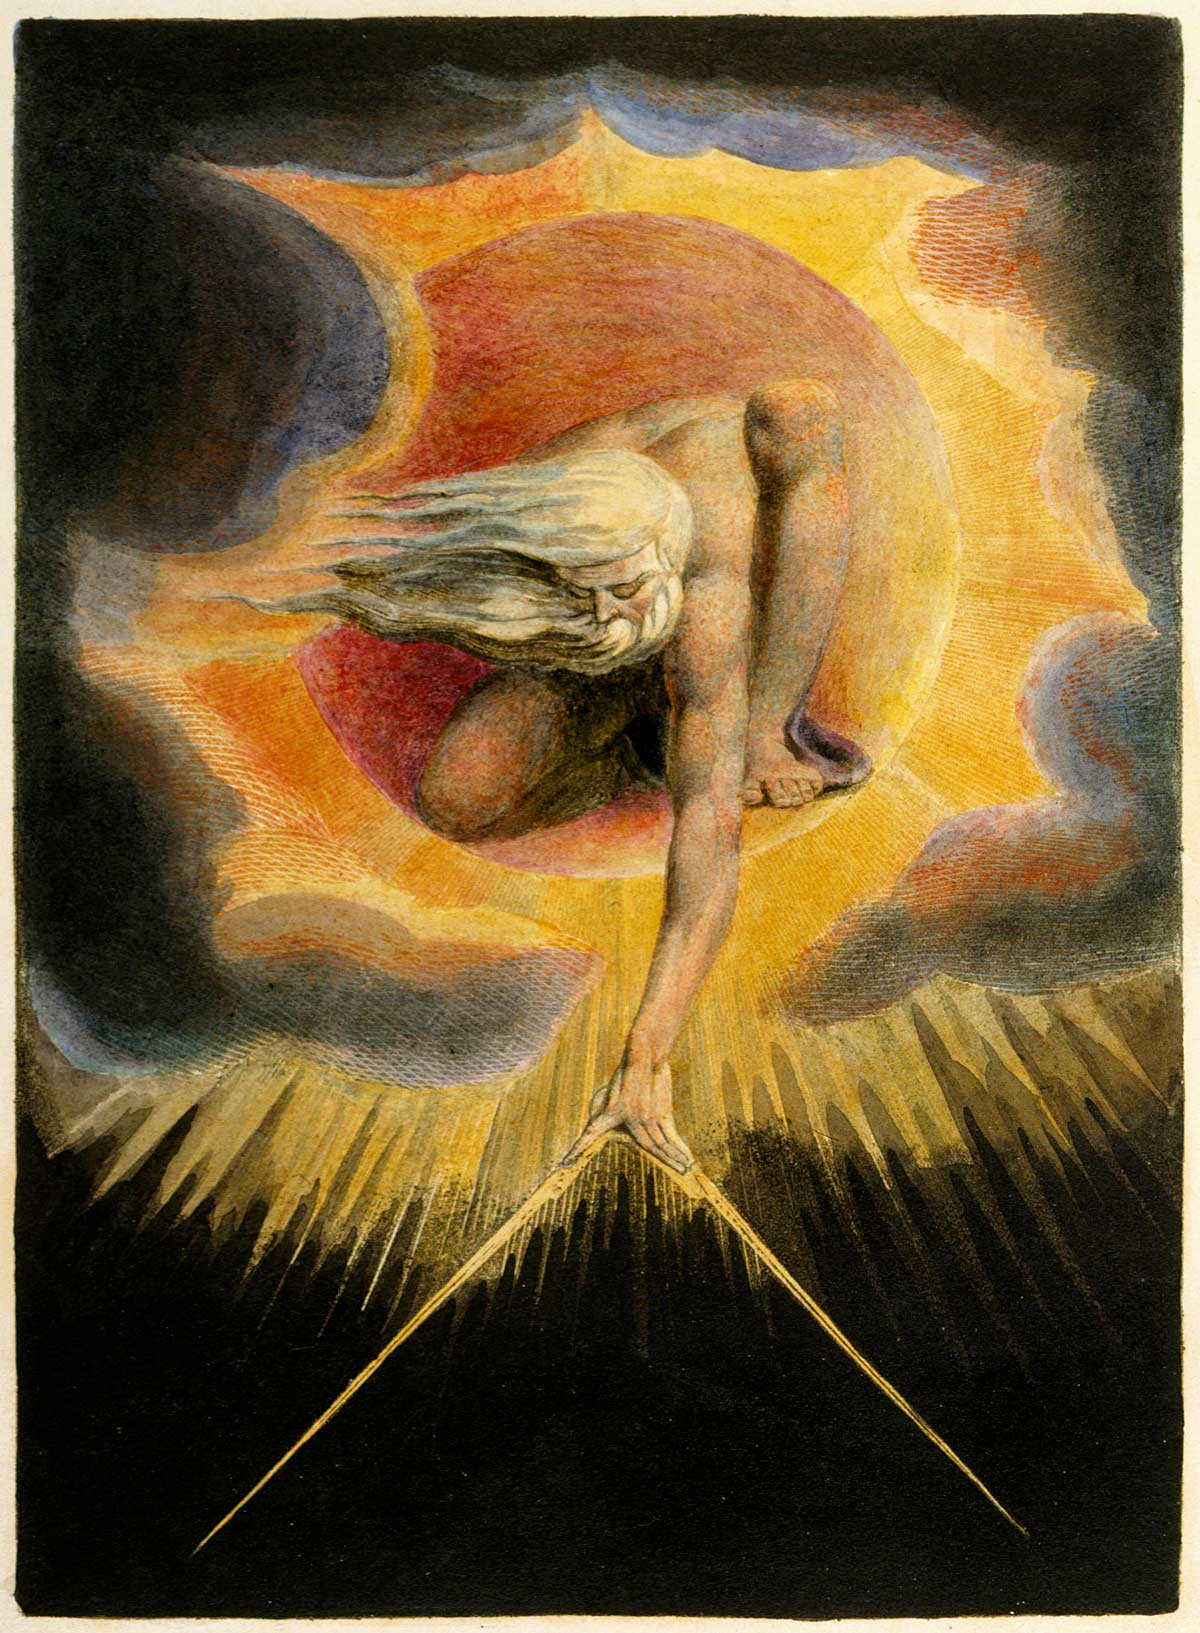 William Blake. The Ancient of Days, 1794.